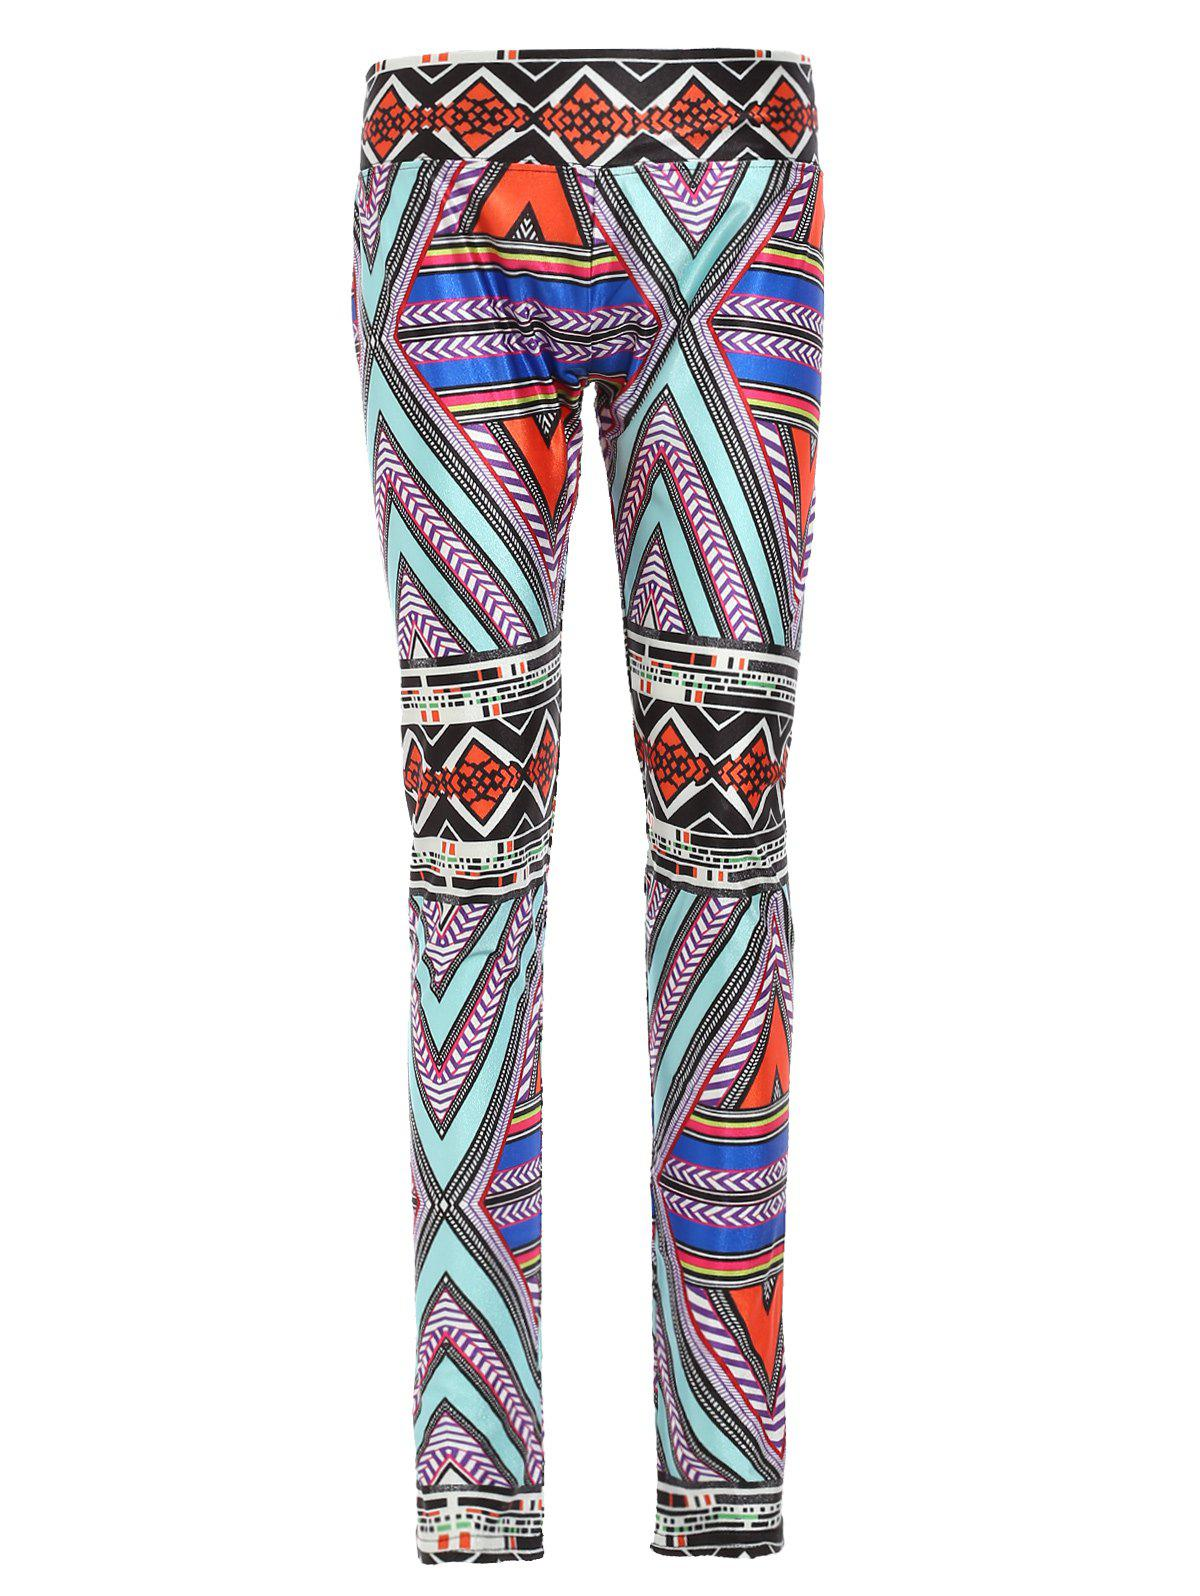 Chic Colorful Geometrical Print Elastic Waist Sport Leggings For Women